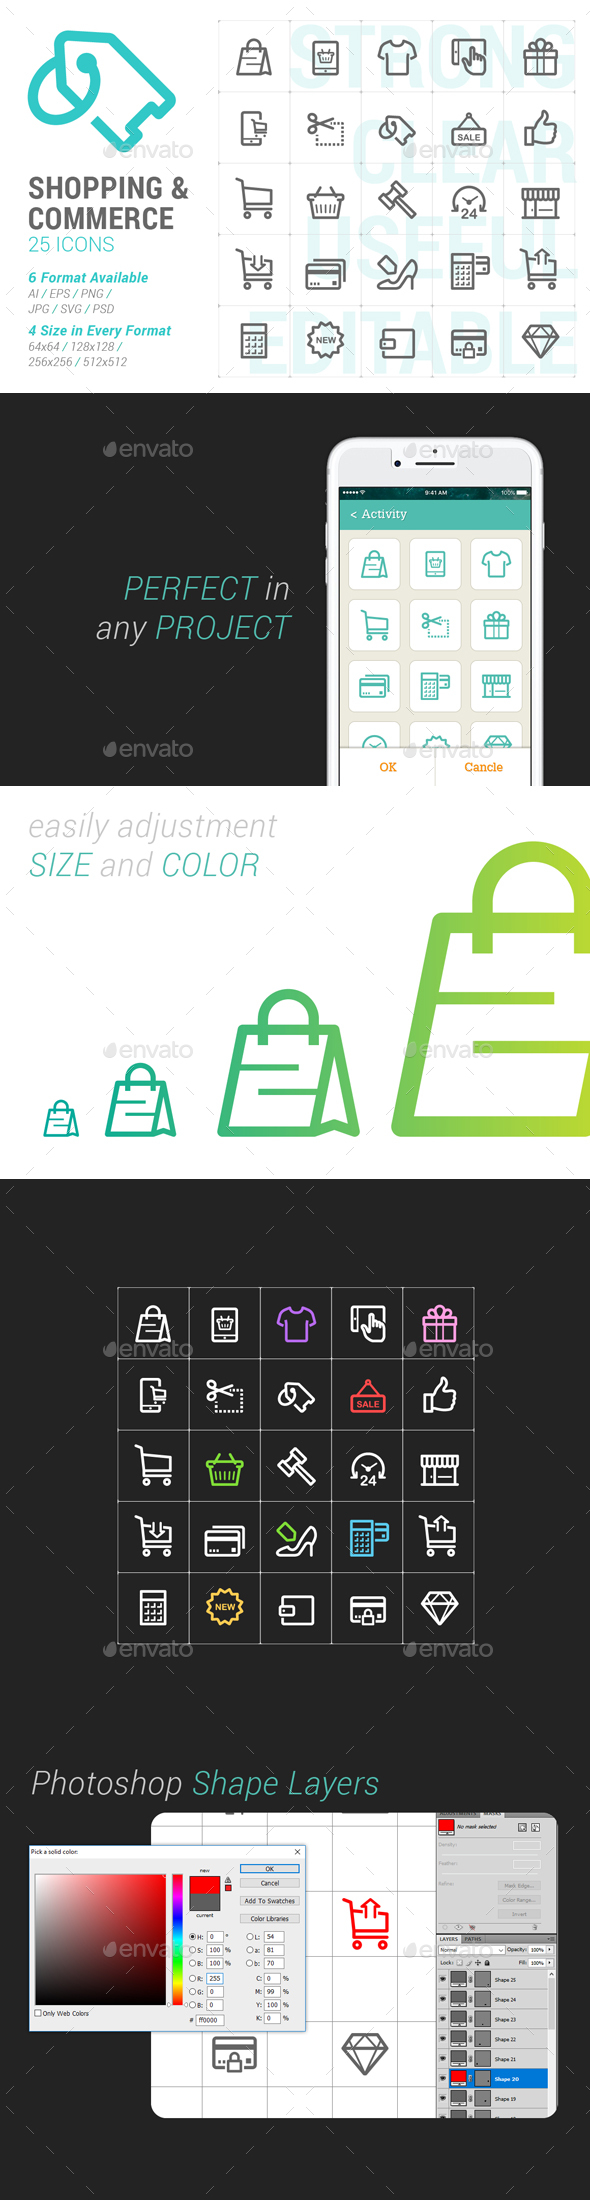 Shopping & Commerce Mini Icon - Business Icons